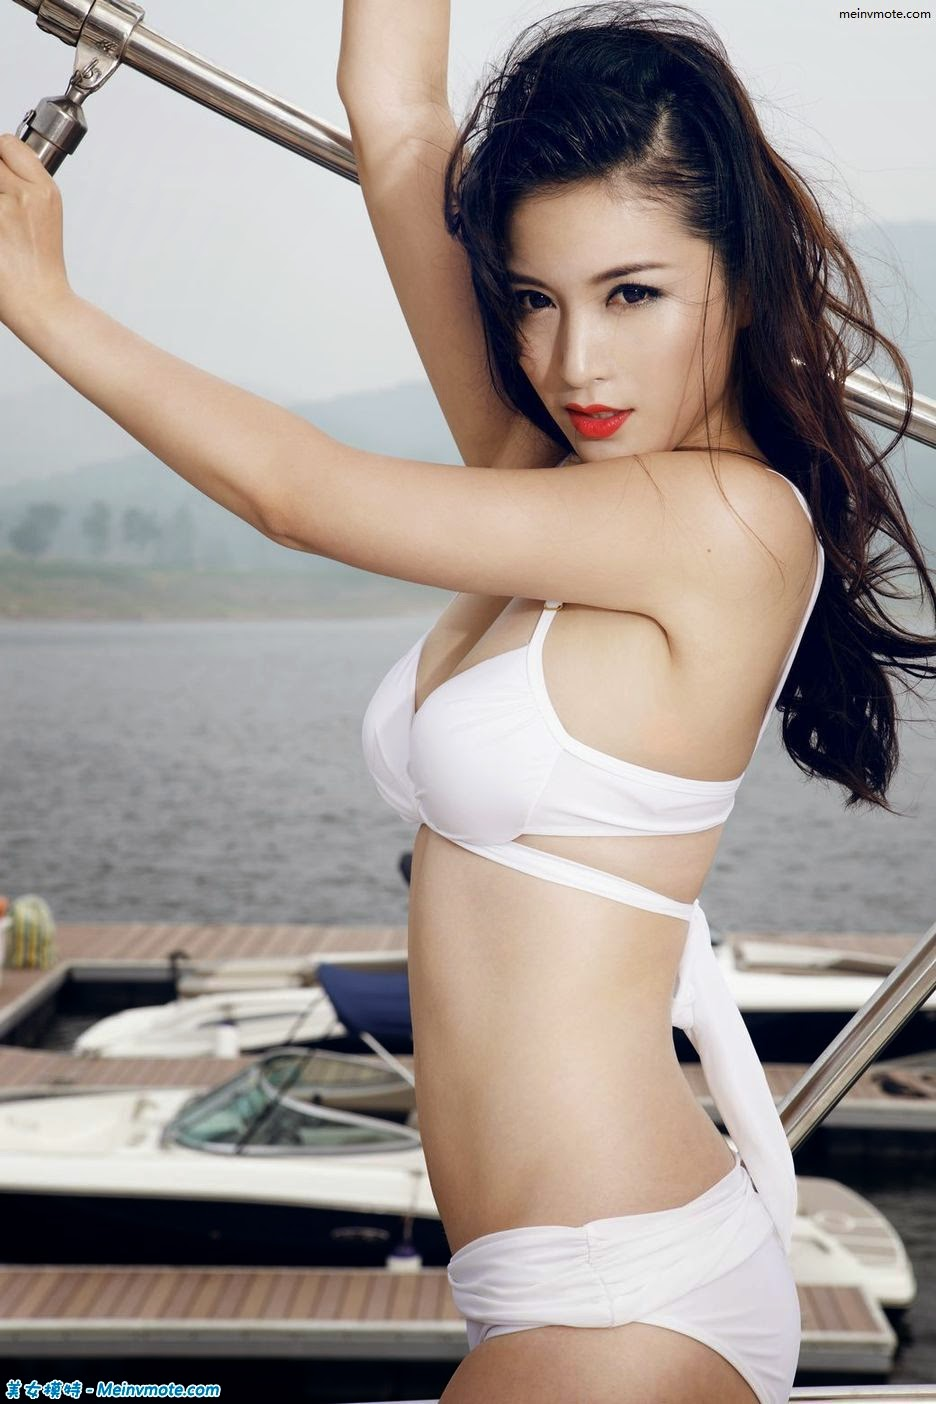 Hot uninhibited female figure on a yacht